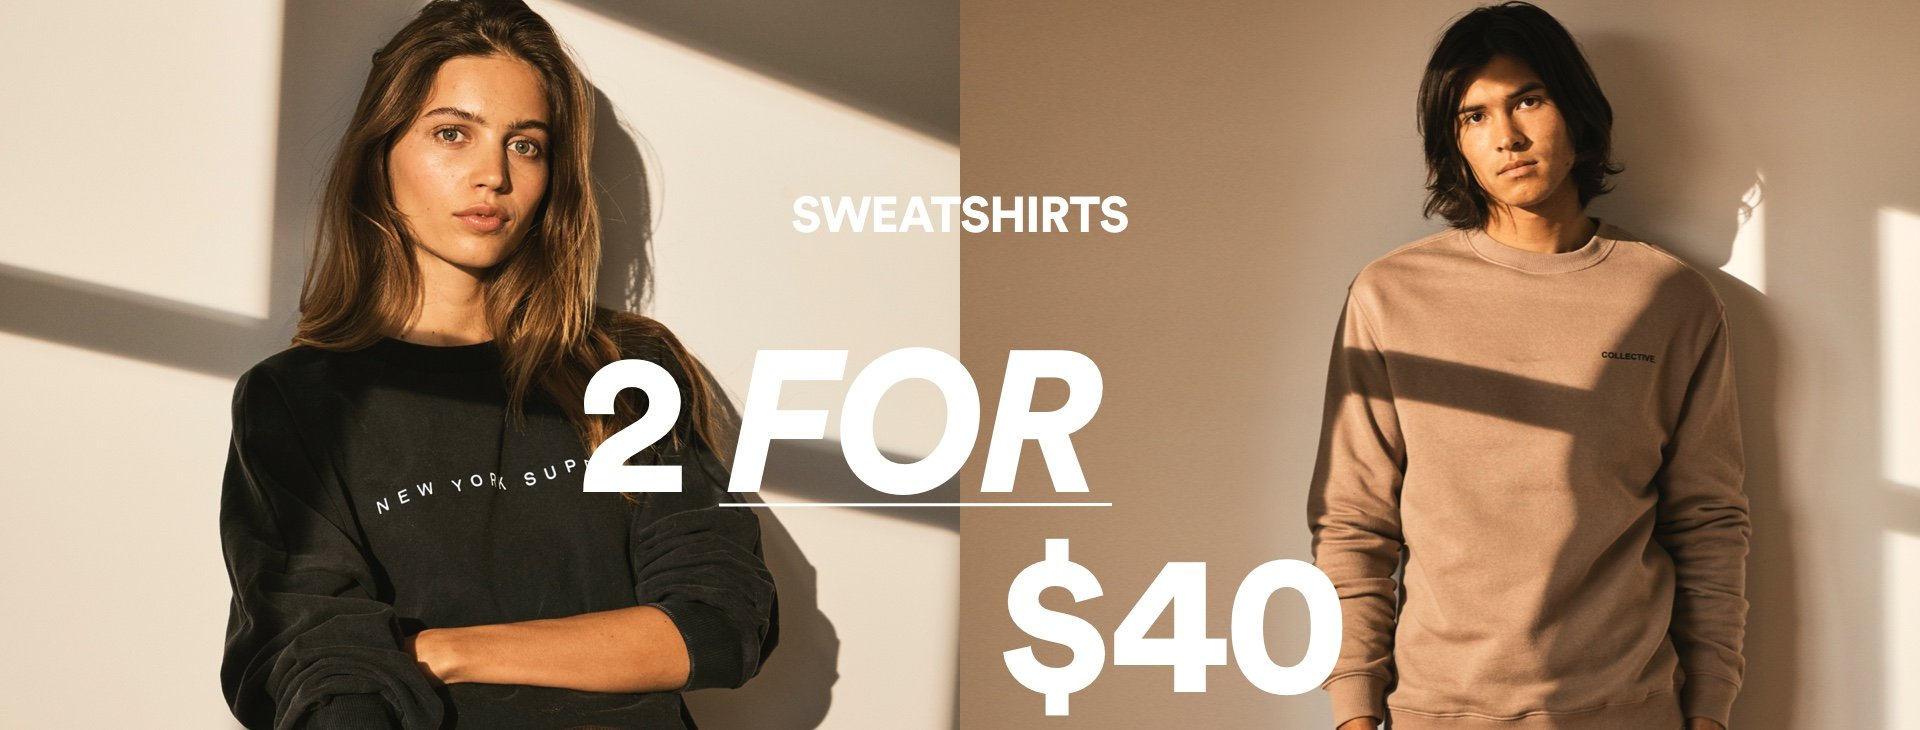 Sweatshirts, 2 for $40. Click to shop.